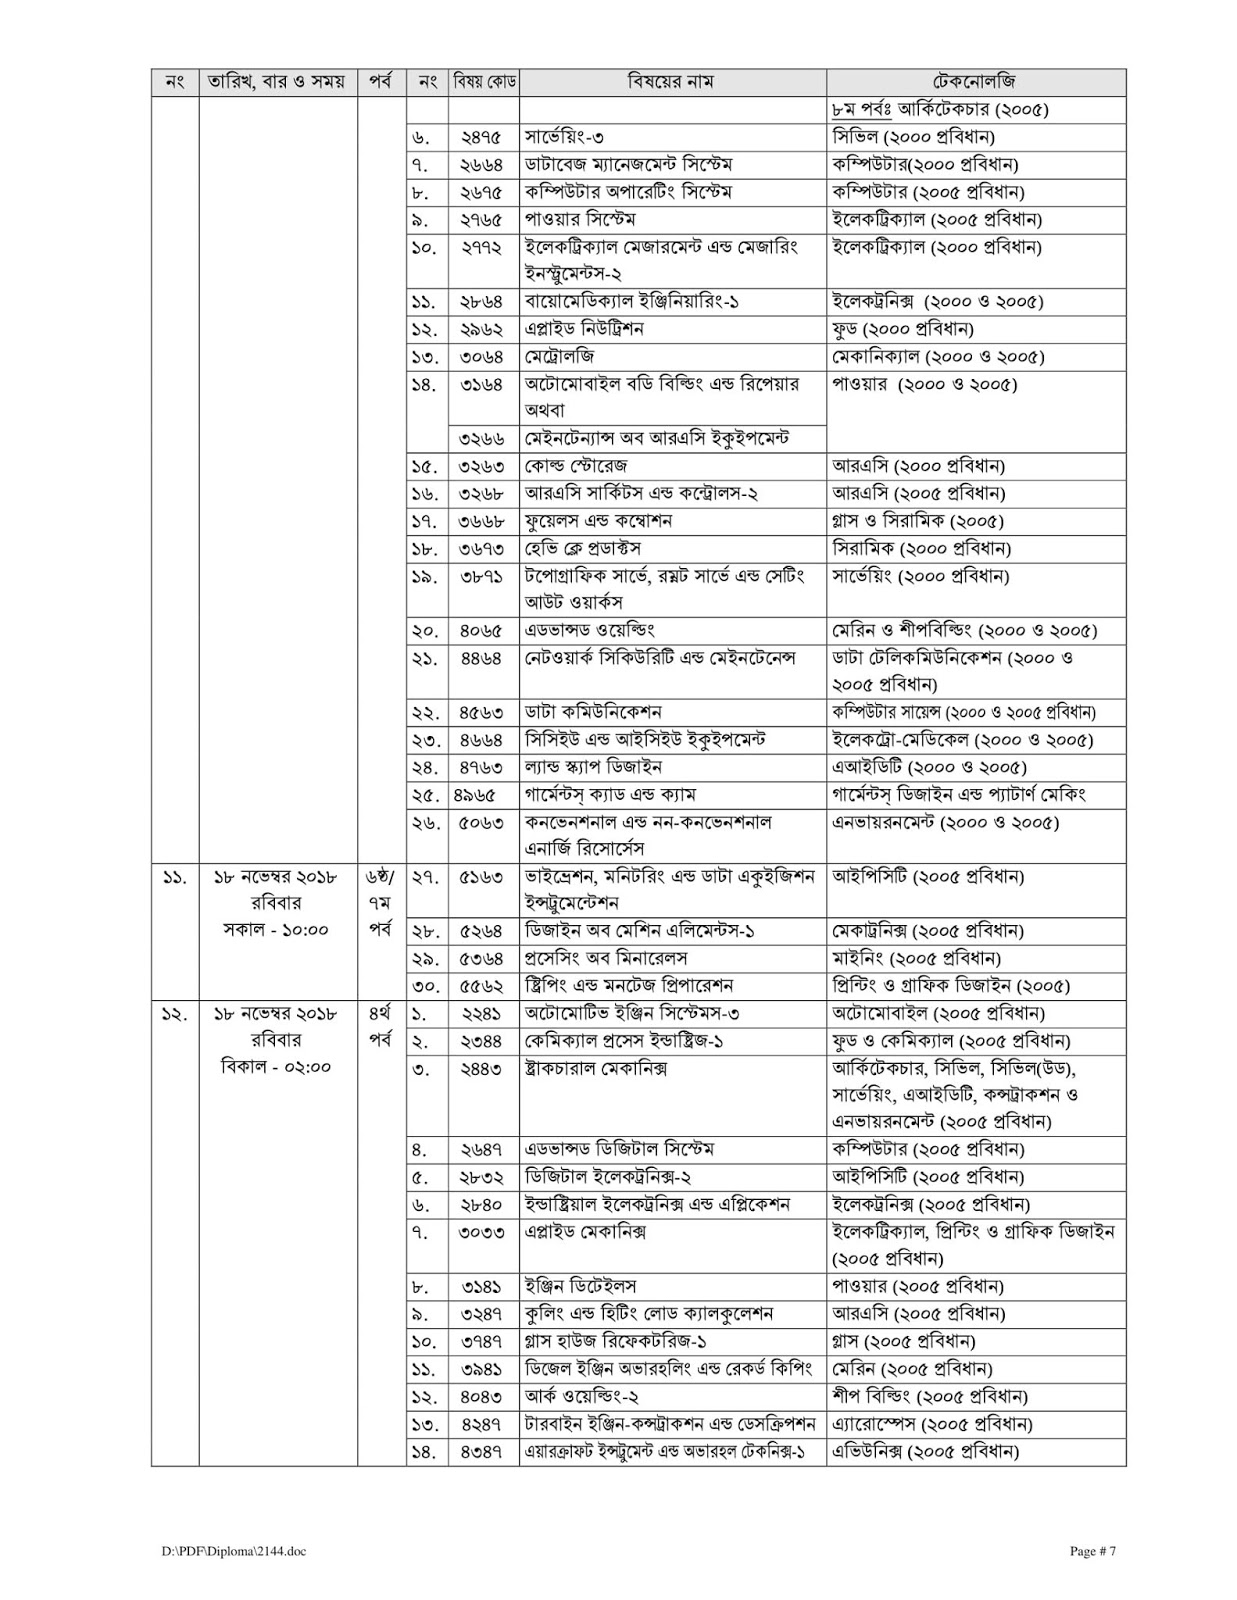 BTEB Diploma in Engineering 8th Semester irregular exams Routine 2018 bteb.gov.bd